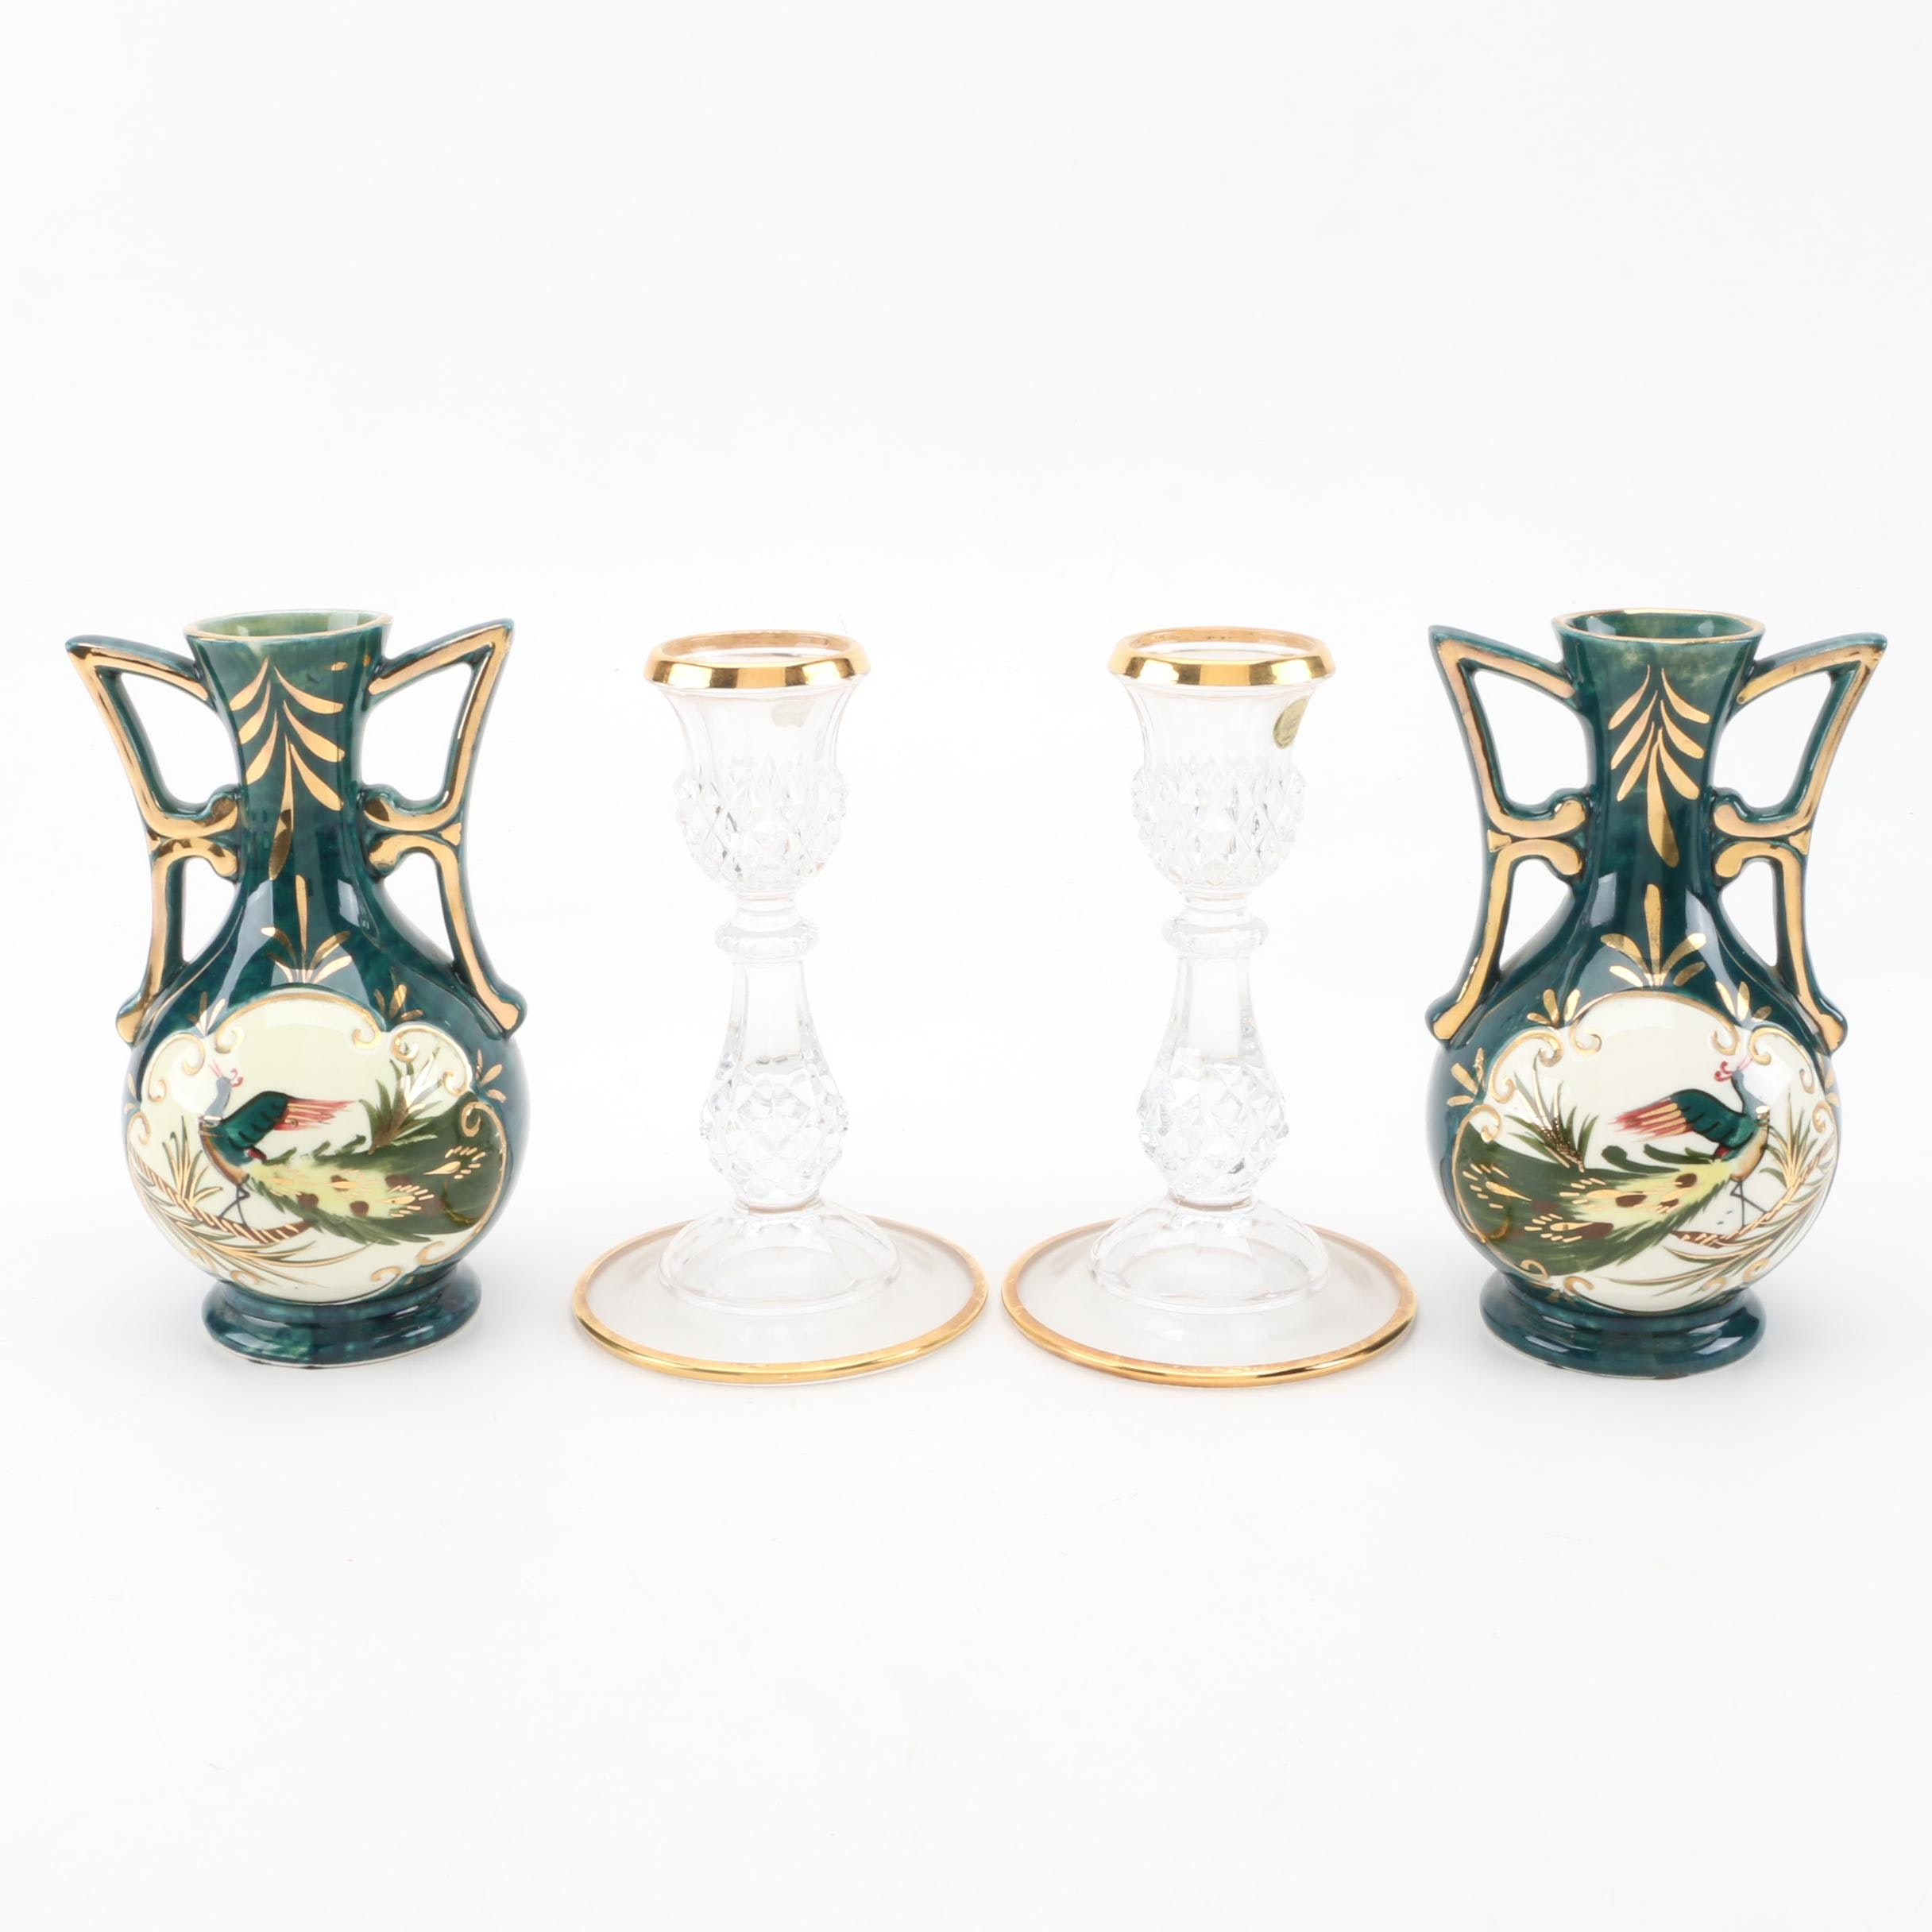 Japanese Hand Painted Ceramic Vases and Crystal Candlesticks